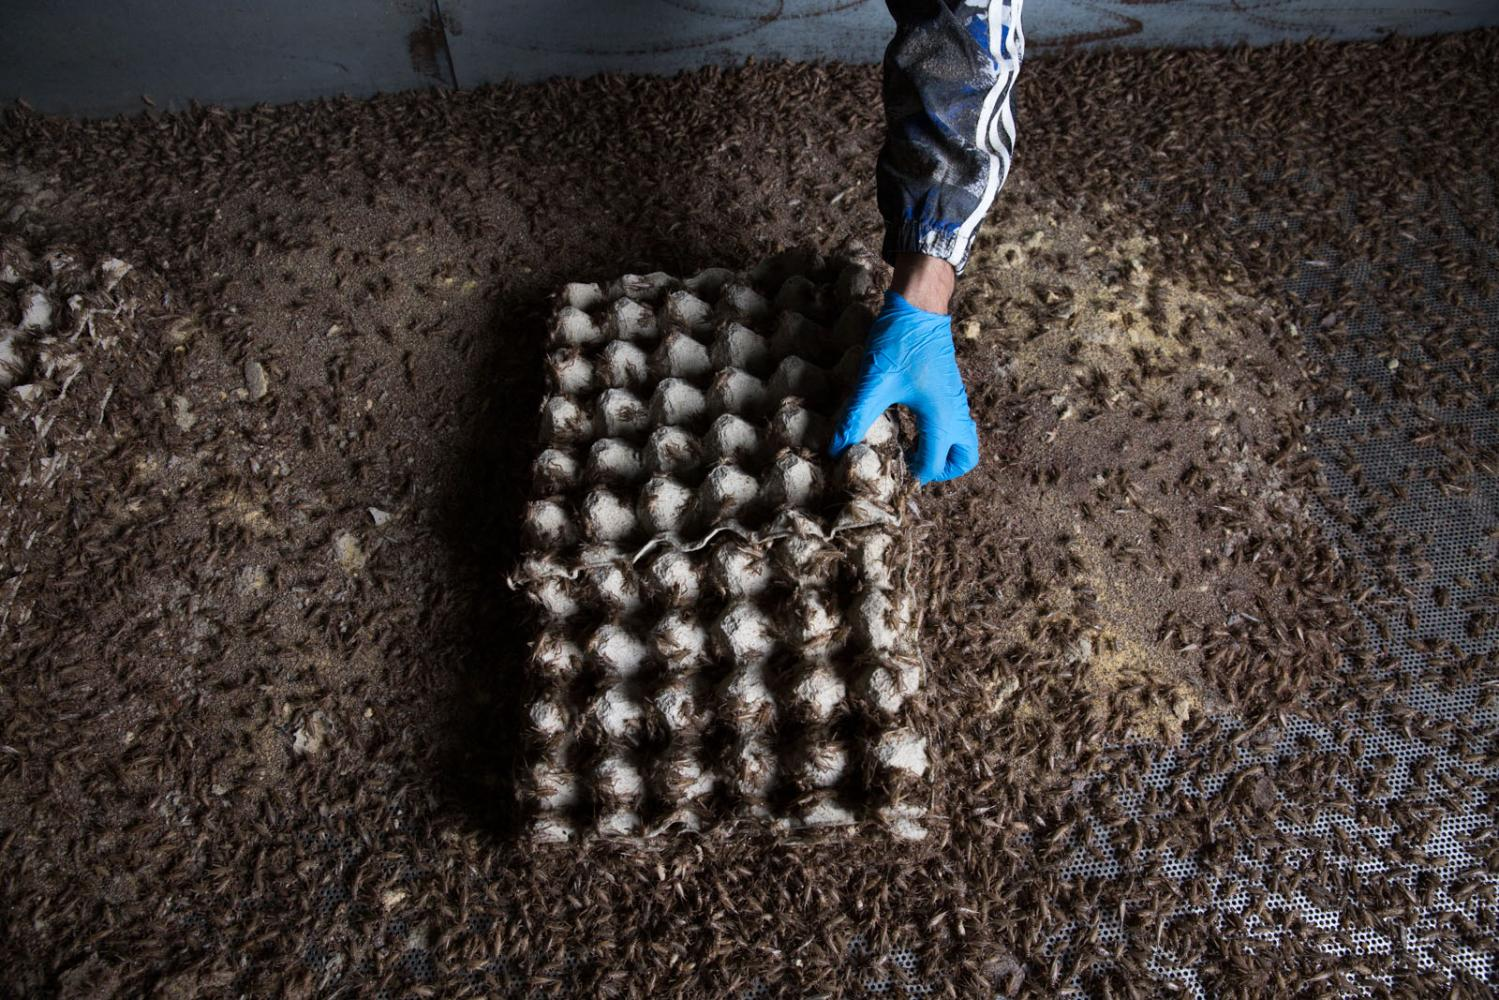 A worker empties a box of fully grown crickets ready to be frozen and turned in to food supplements. Chiang Mai, Thailand.